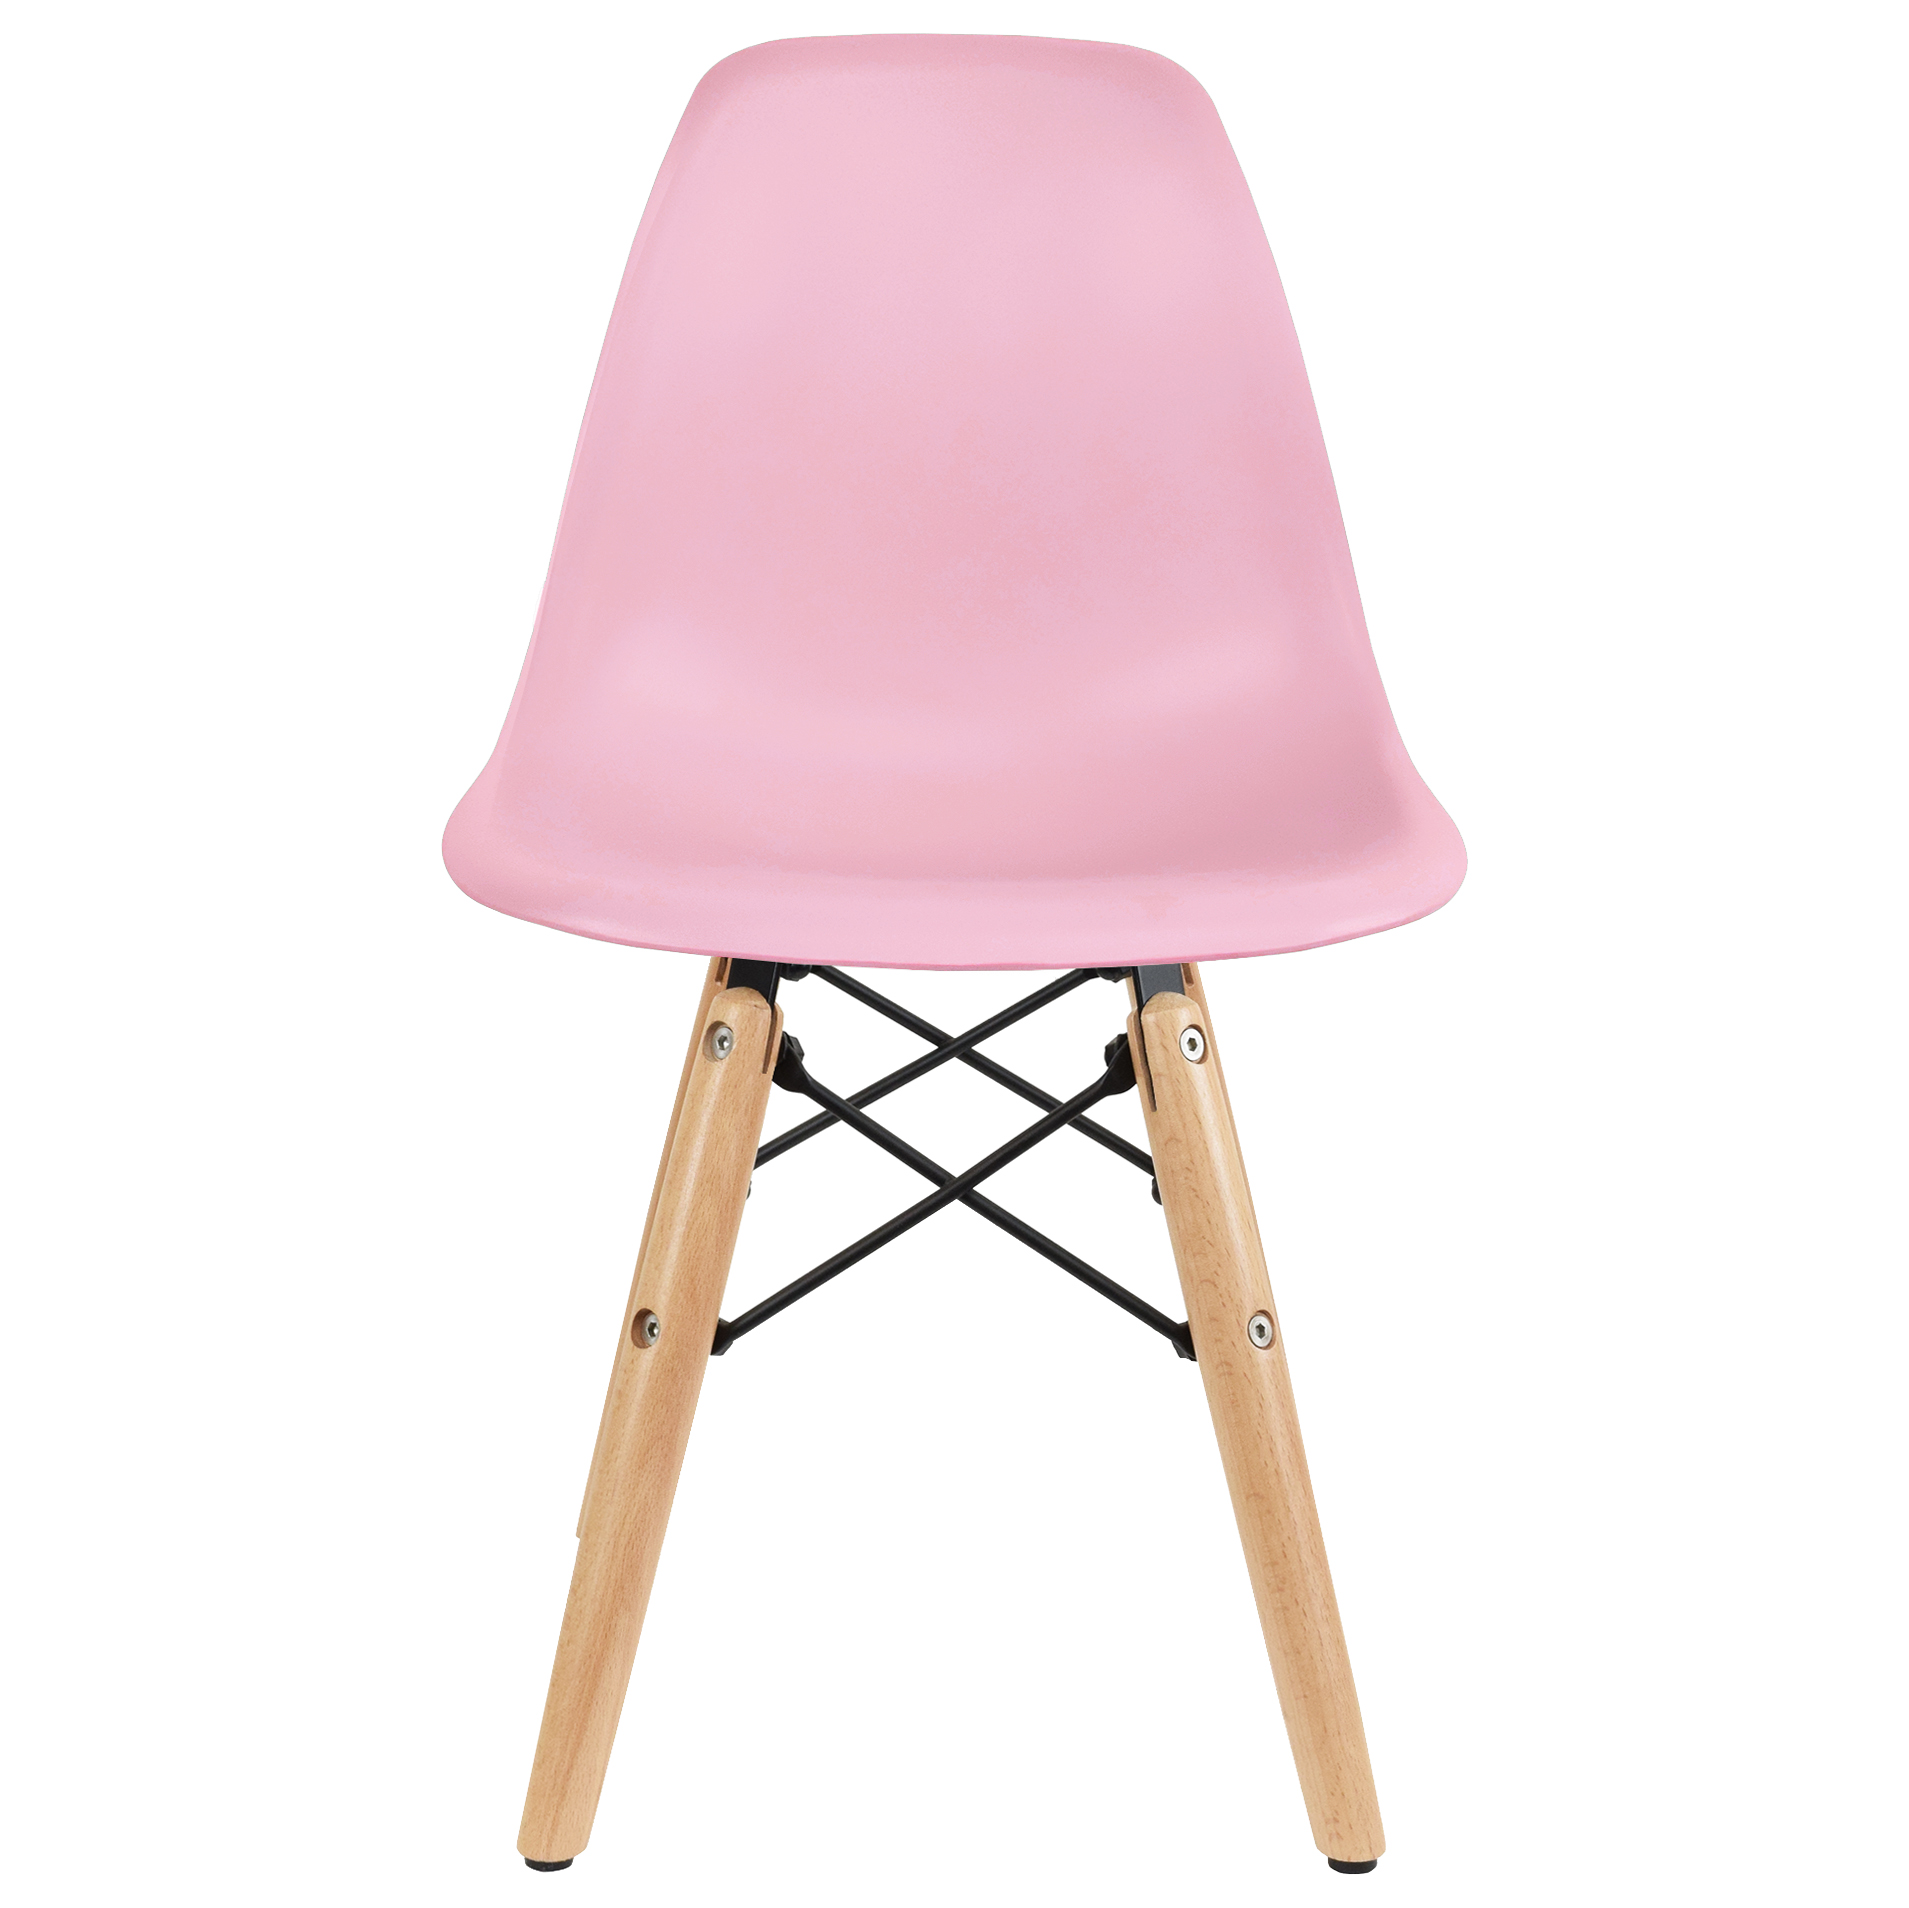 2xhome - White - Toddler Kids Size Plastic Side Chair White Seat